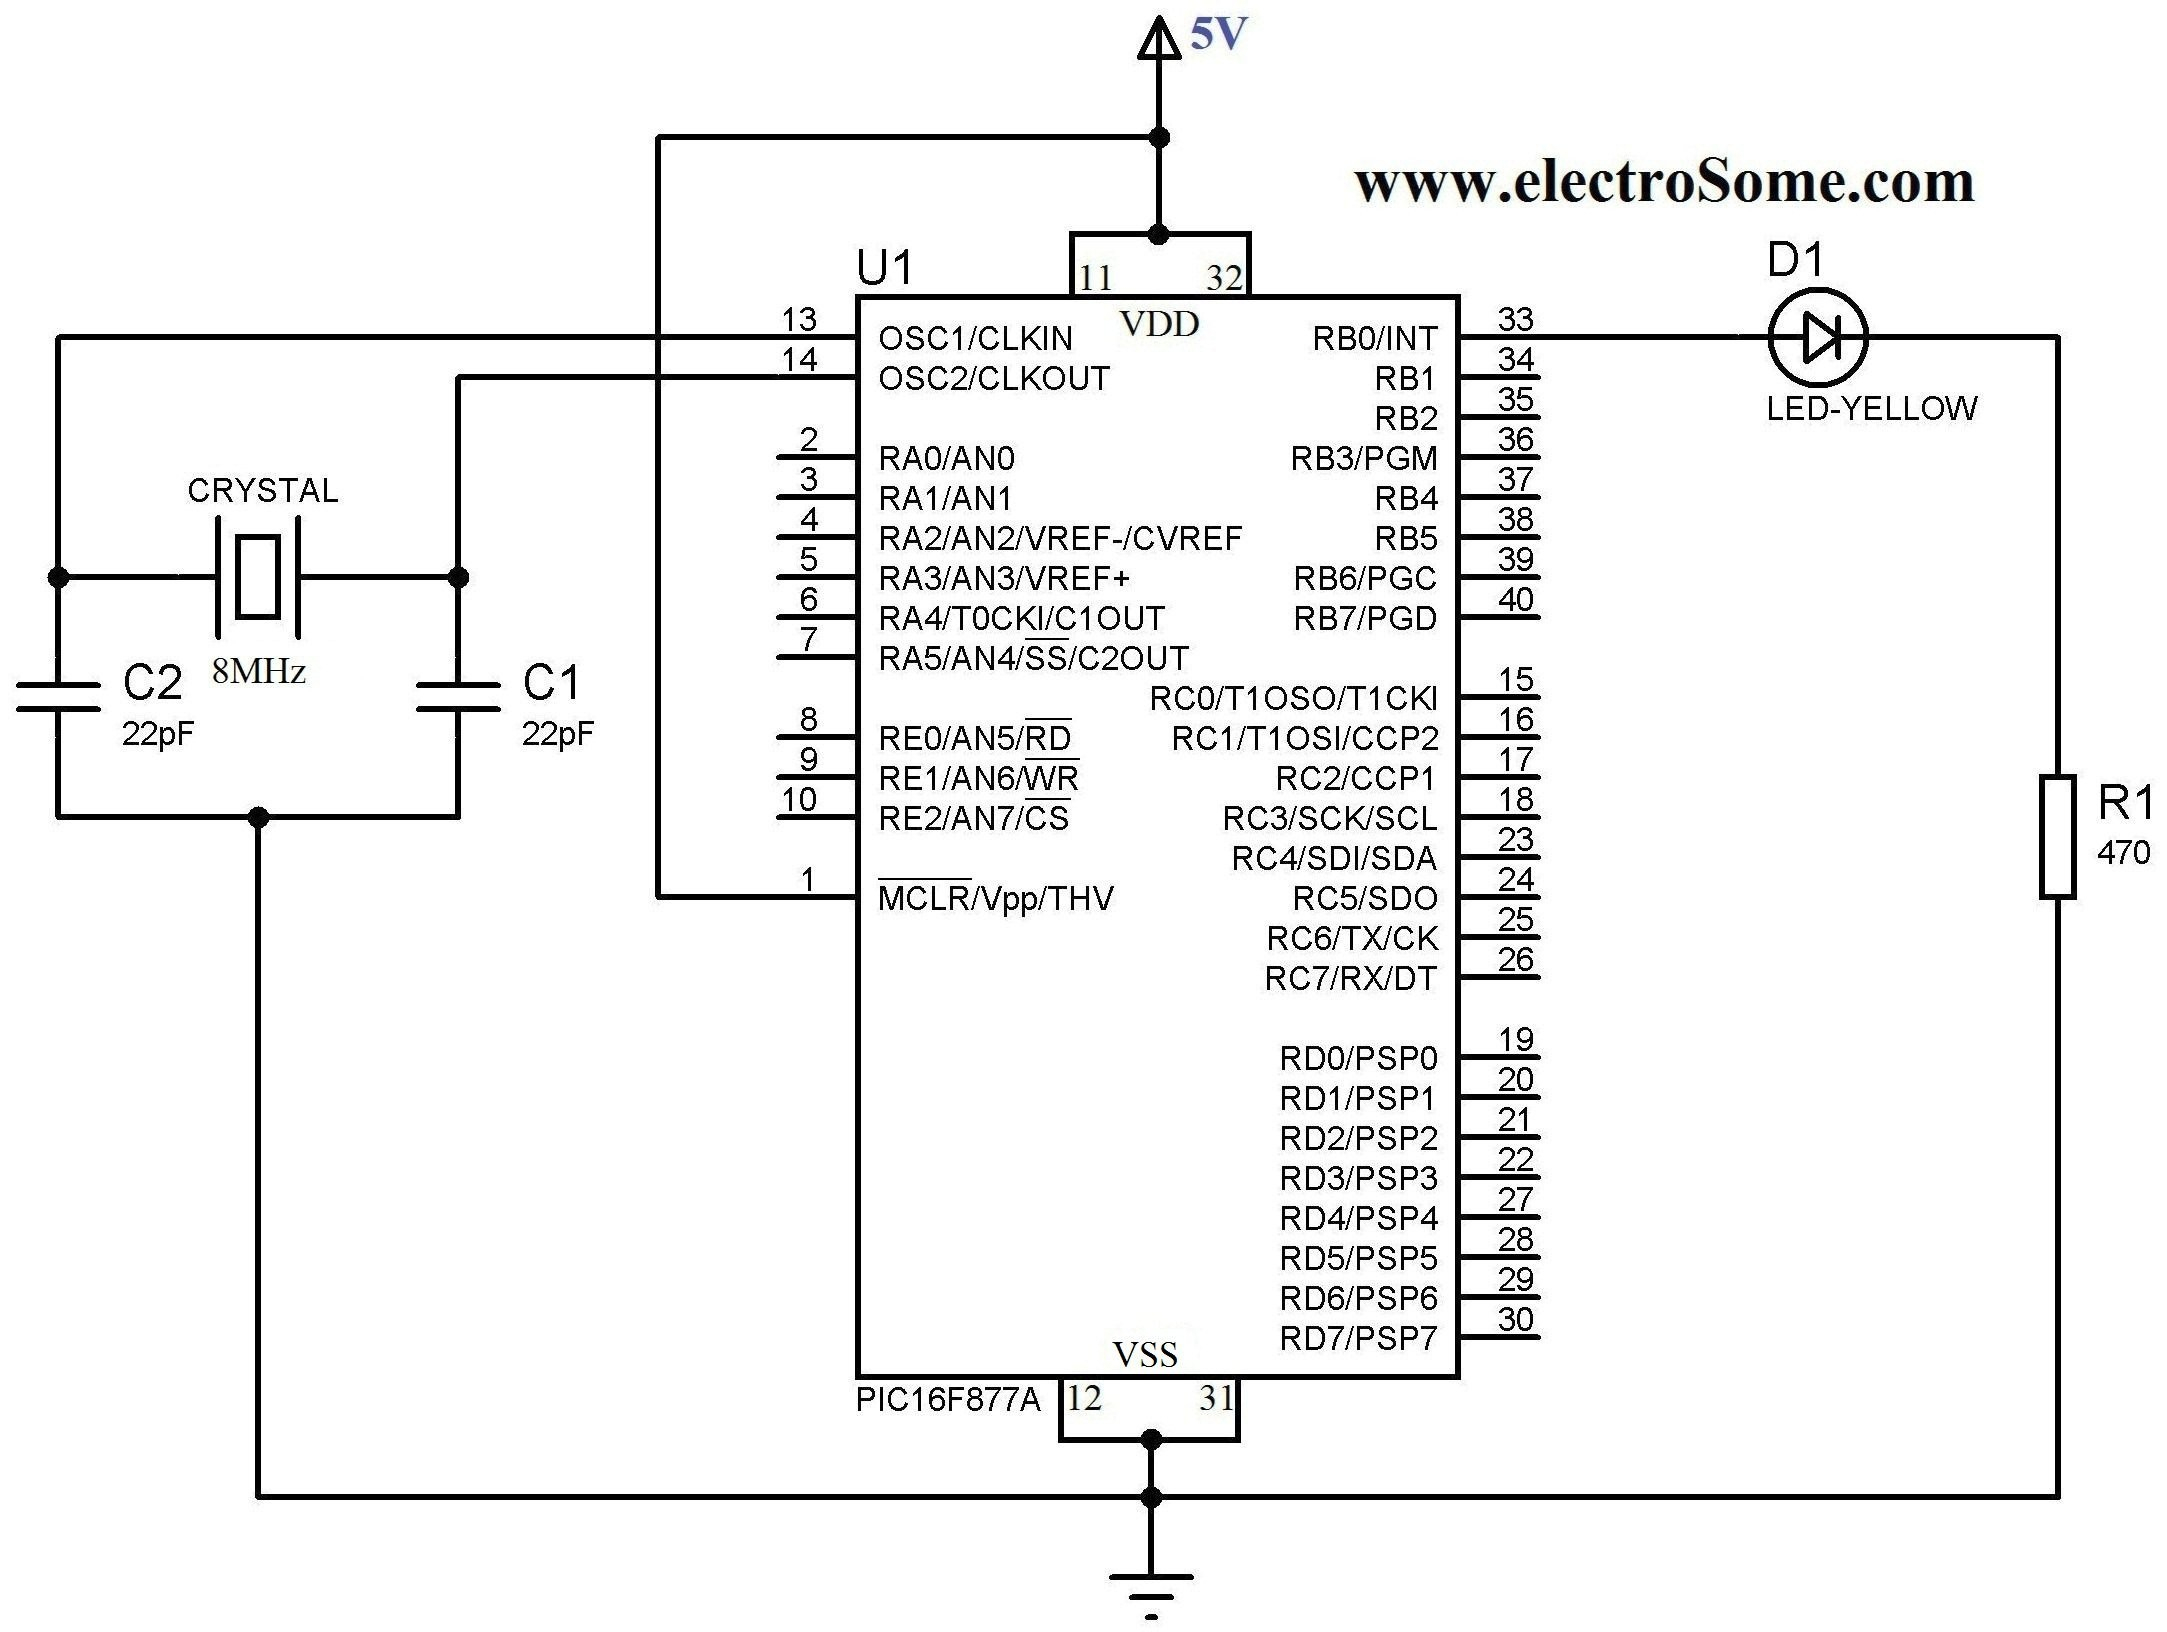 Motor Starter Wiring Diagram New Allen Bradley Motor Starter Wiring Diagram Surface Grinder Changover Of Motor Starter Wiring Diagram together with Cutler Hammer Motor Starter Wiring Diagram Detailed Schematics Diagram Cutler Hammer Overload Heater Chart X besides E Be Bd C Cd Fab D A Ba C further Wiring Interposing Relays Min likewise Centerline Greybottom Front Large W H. on allen bradley motor starter wiring diagram